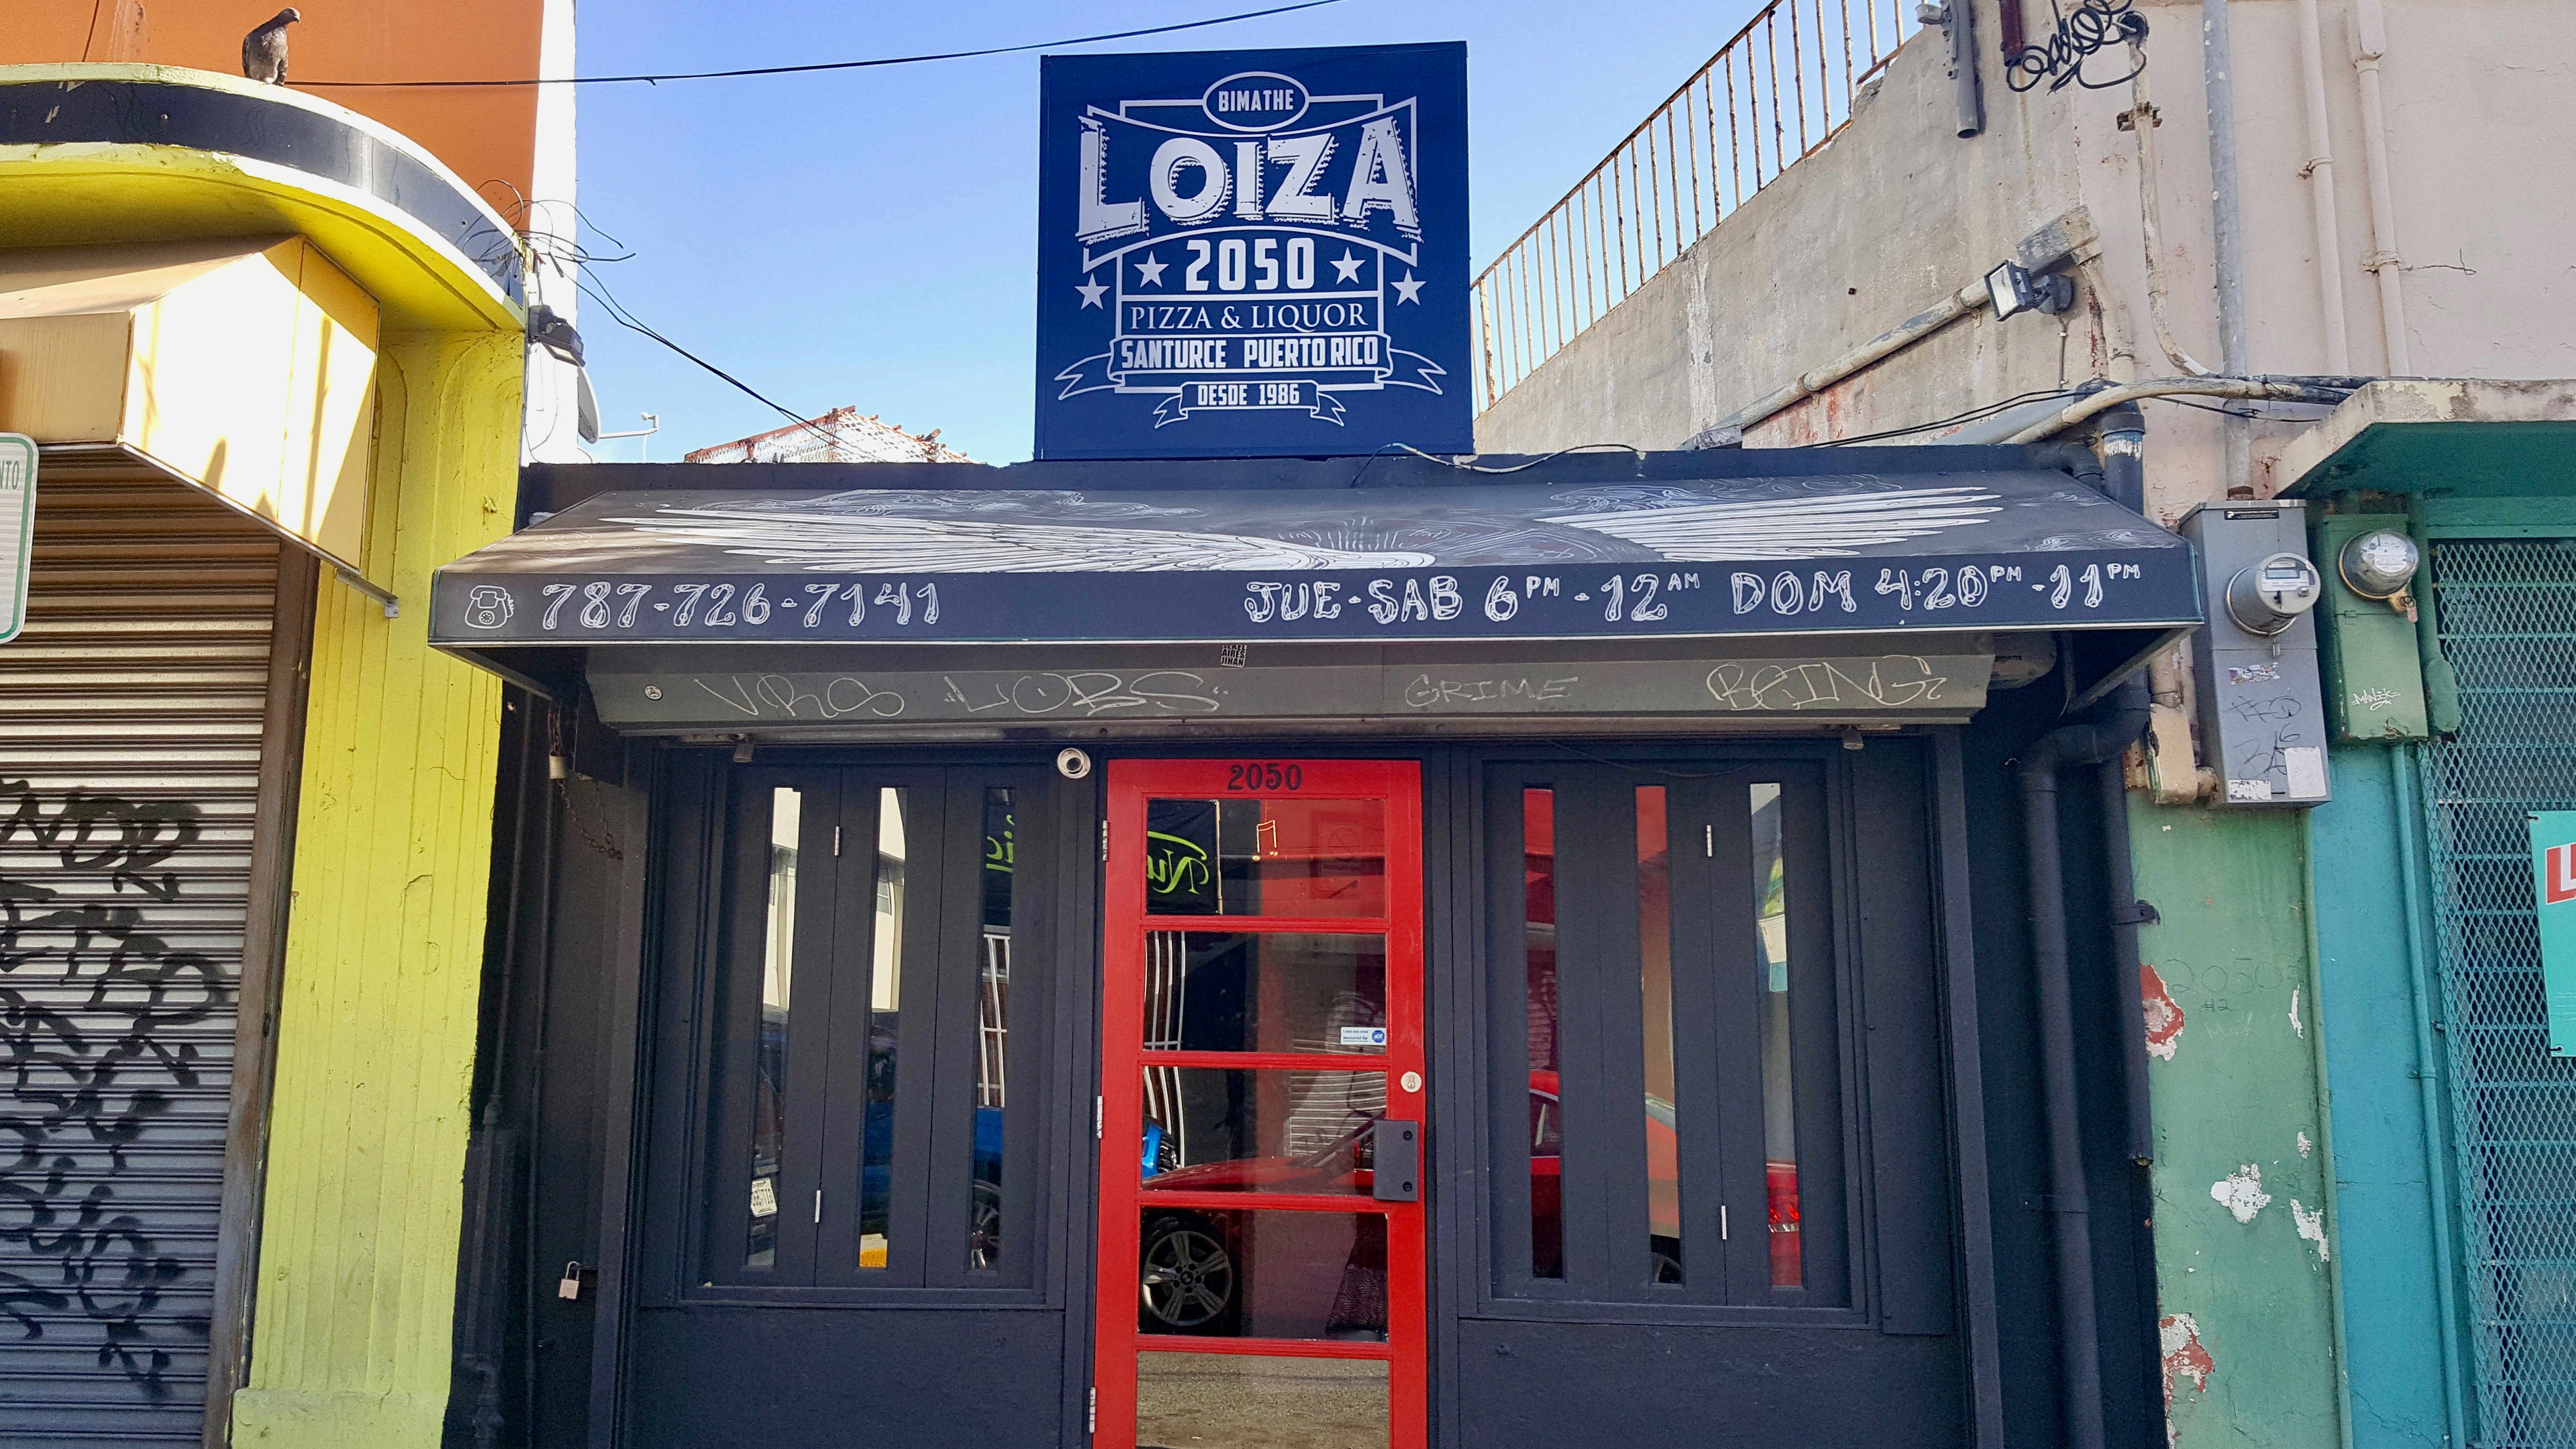 Loiza 2050: famous for its coconut-crusted pizza